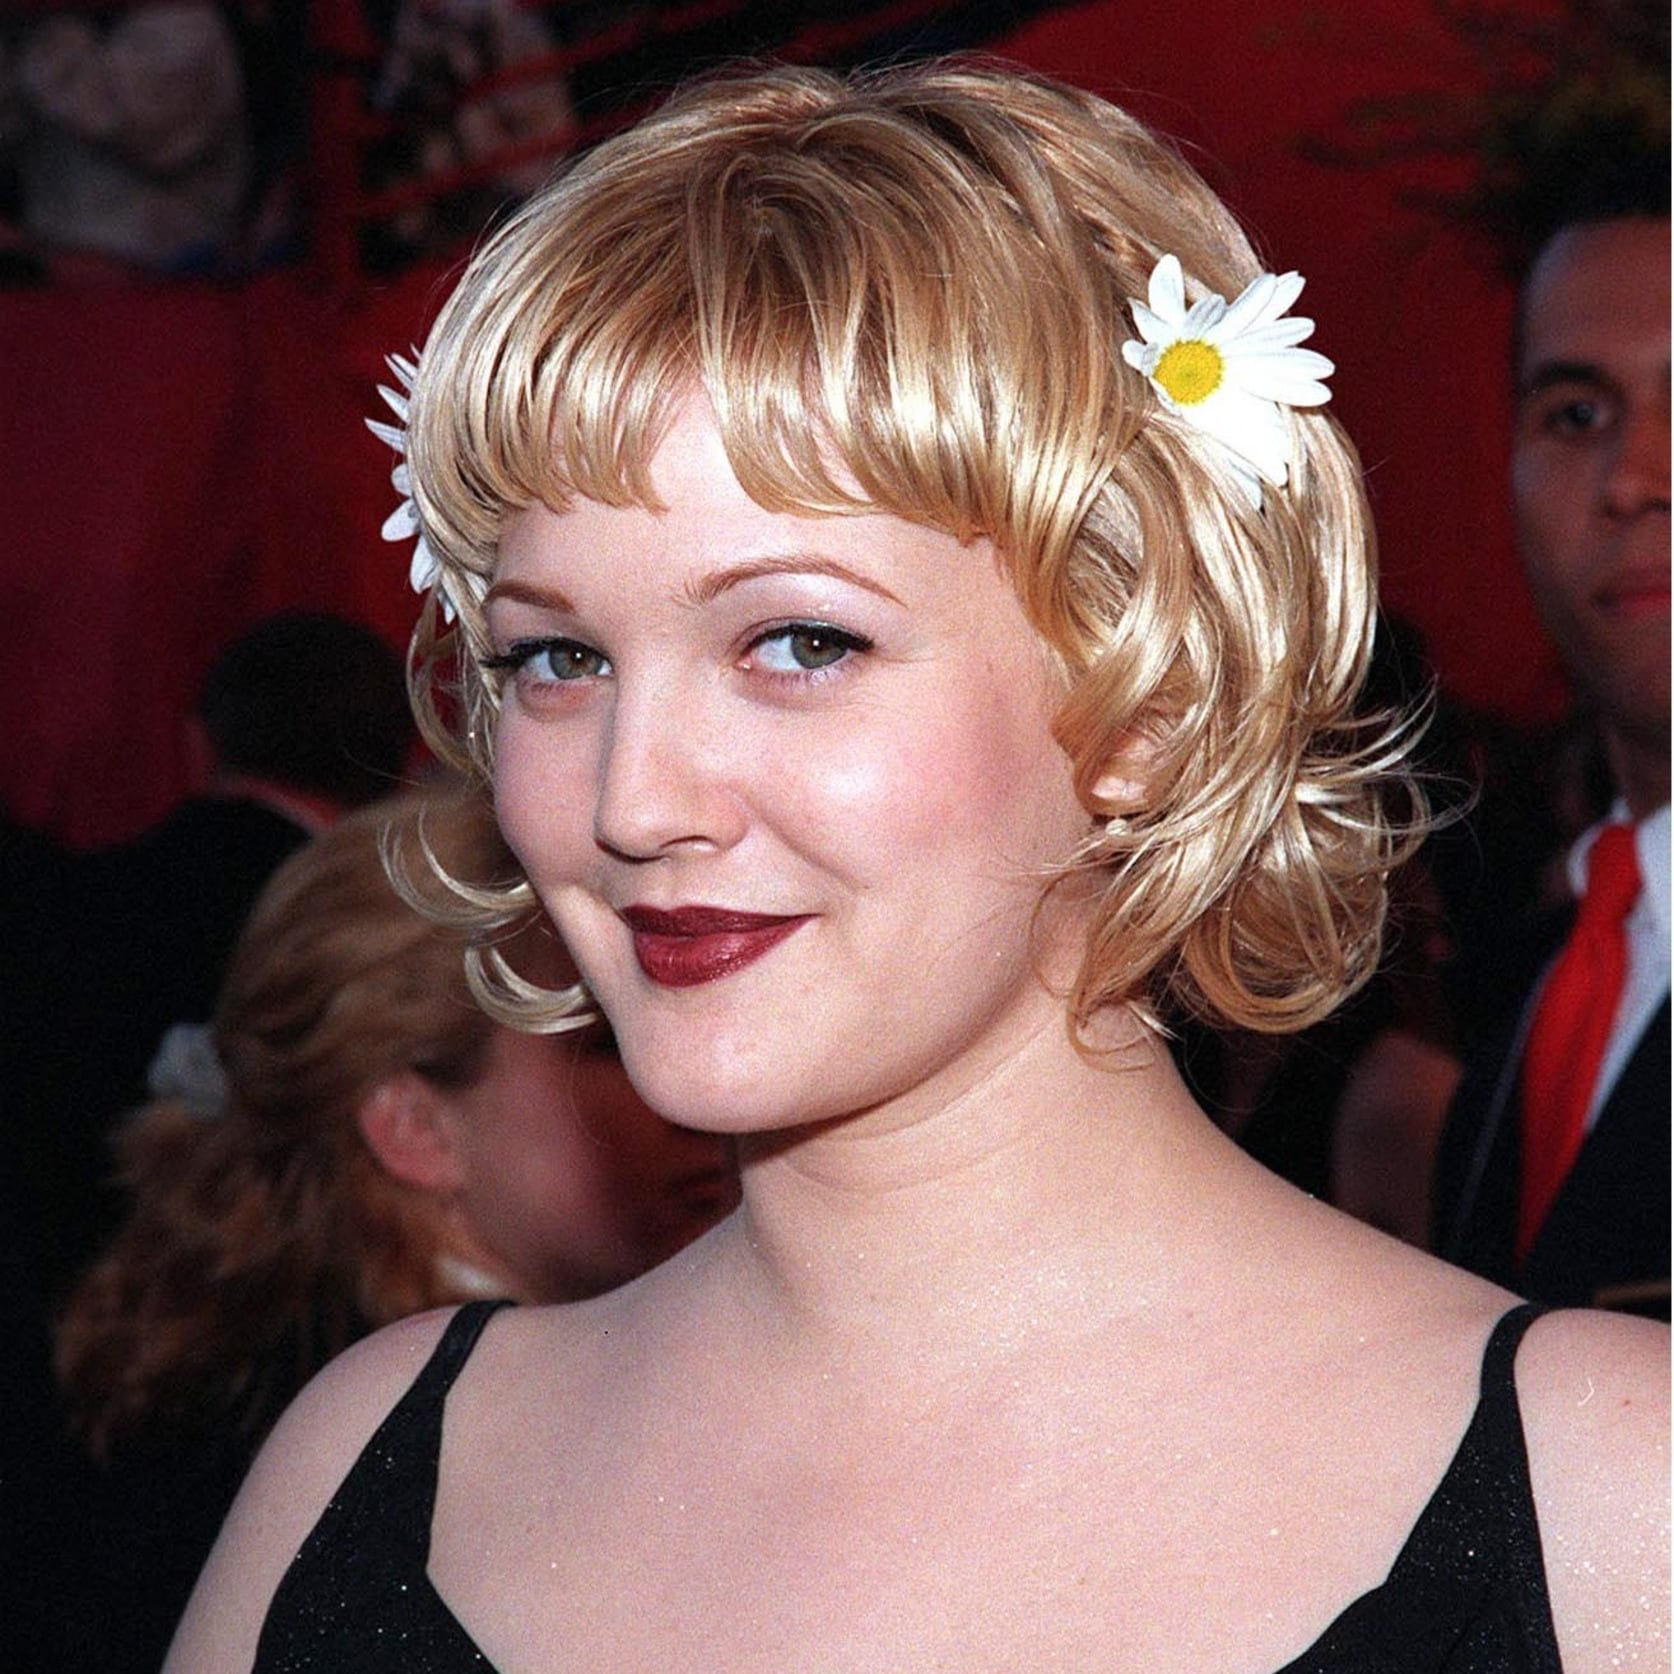 Drew Barrymore's Bumped Bob Cut With Bangs